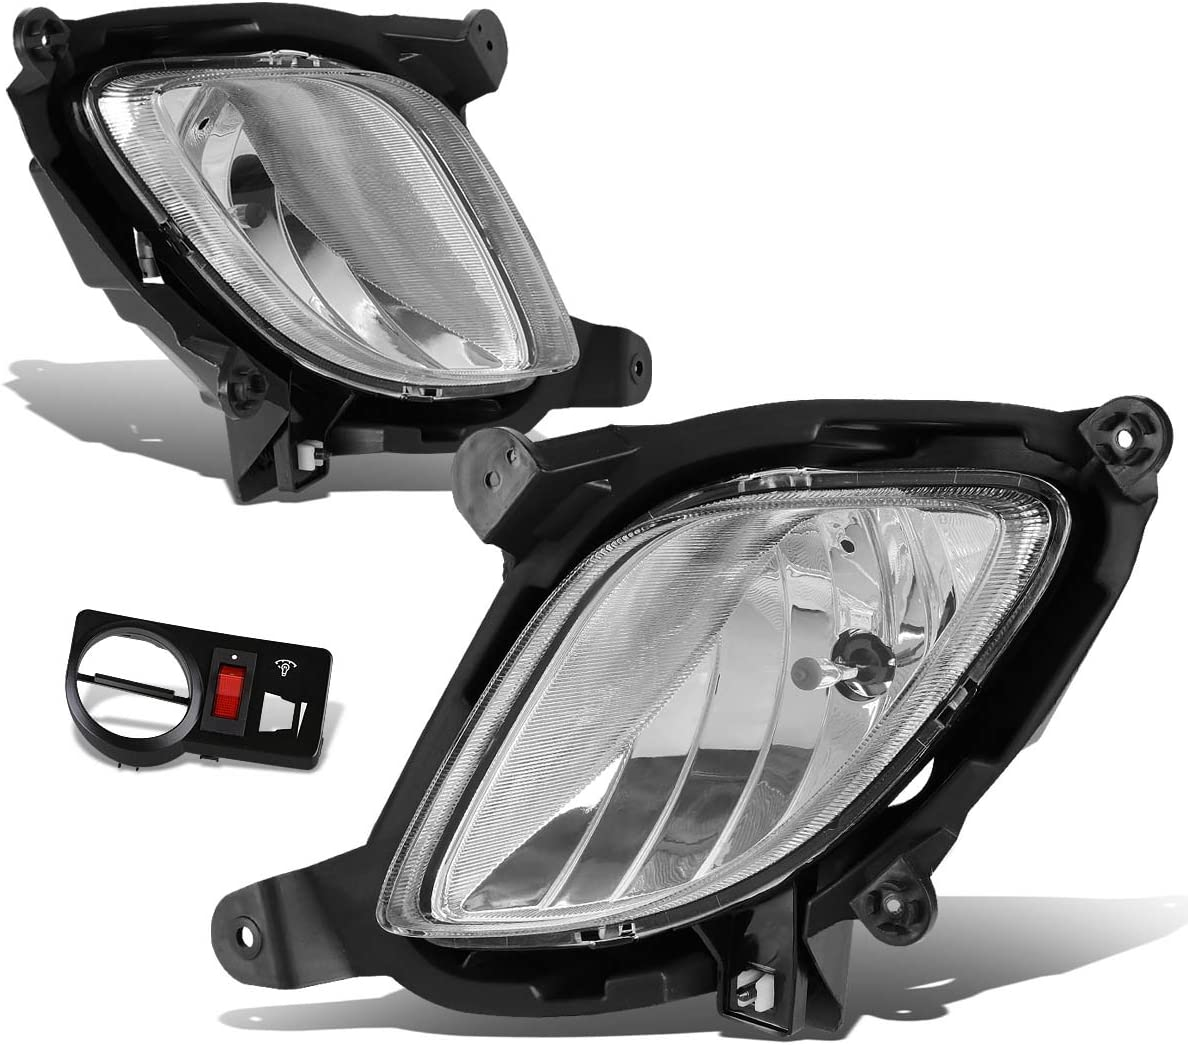 Replacement for Genesis Coupe Pair of Bumper Driving Fog Lights w/Switch (Clear Lens)